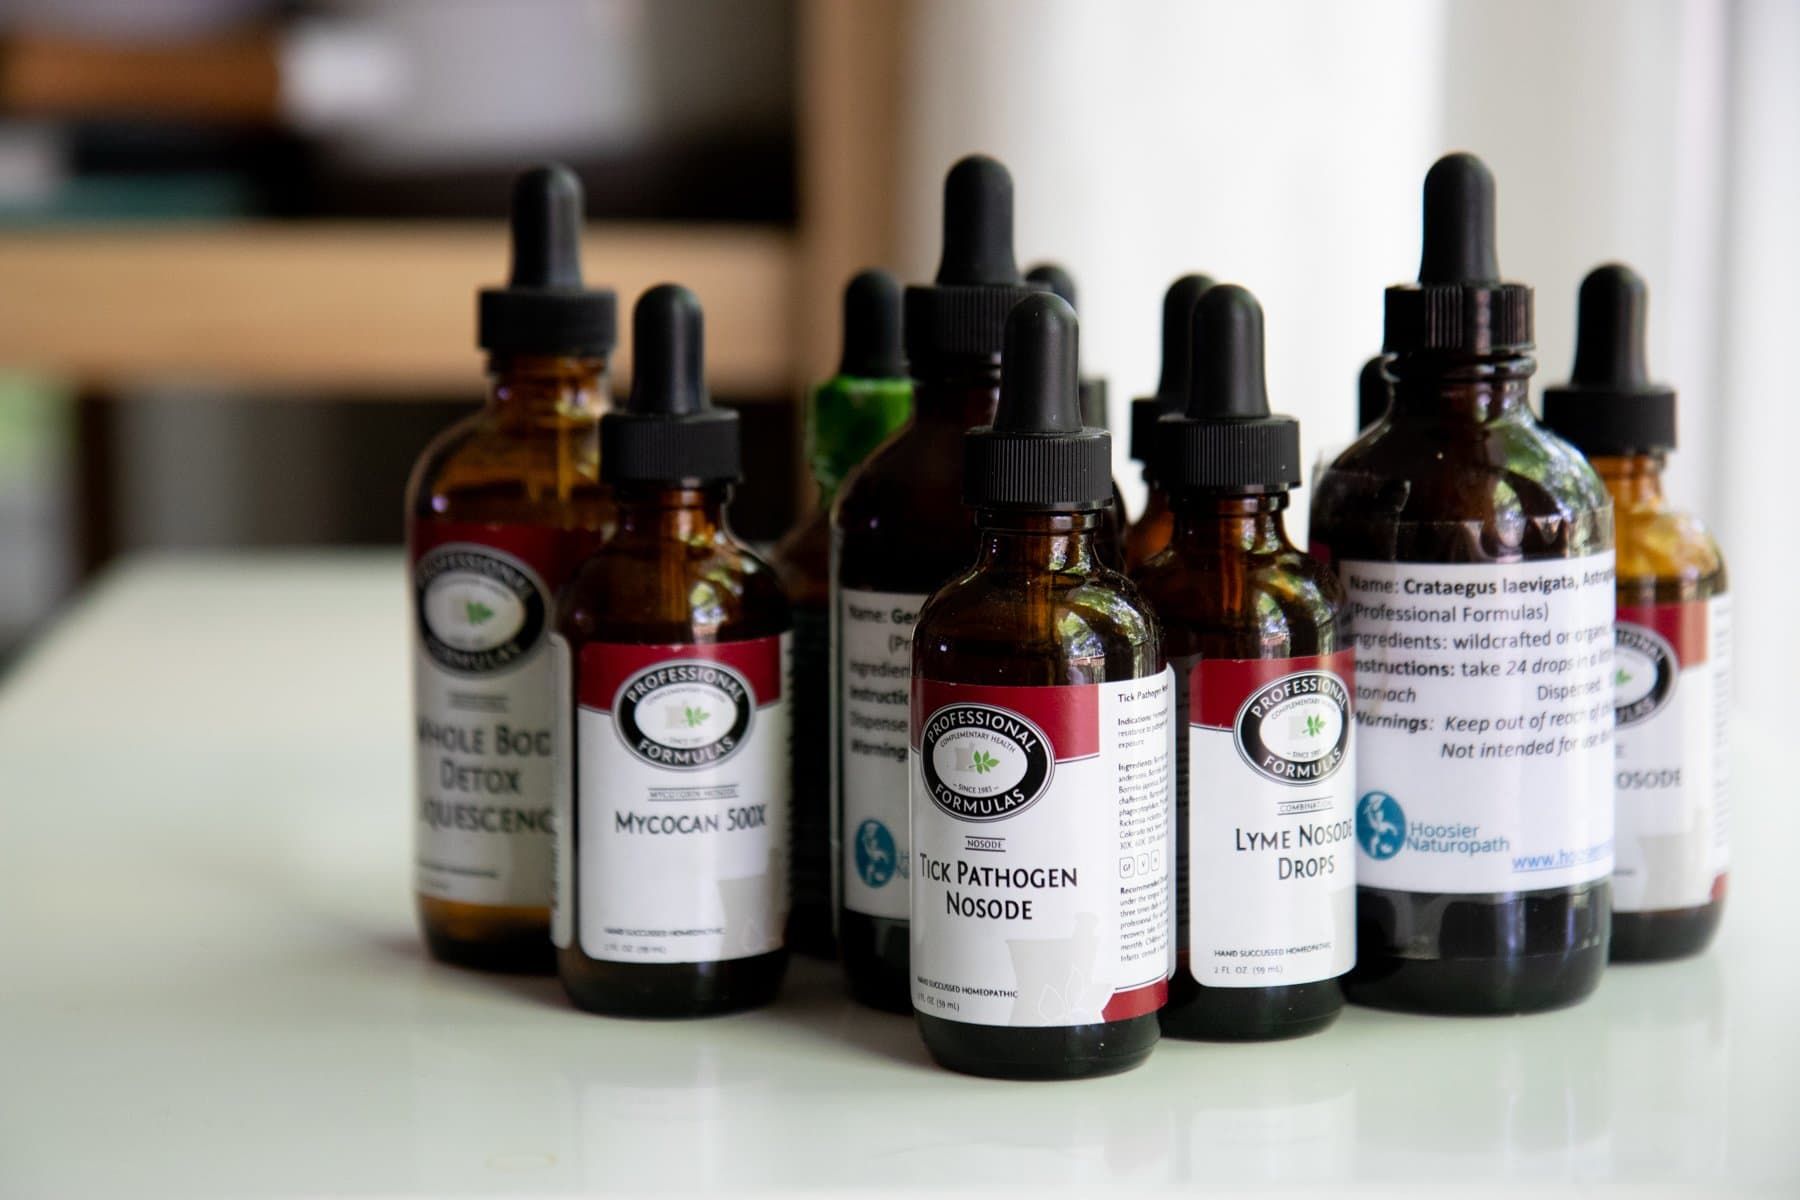 Cluster of eyedropper bottles with herbal remedies for Lyme Disease